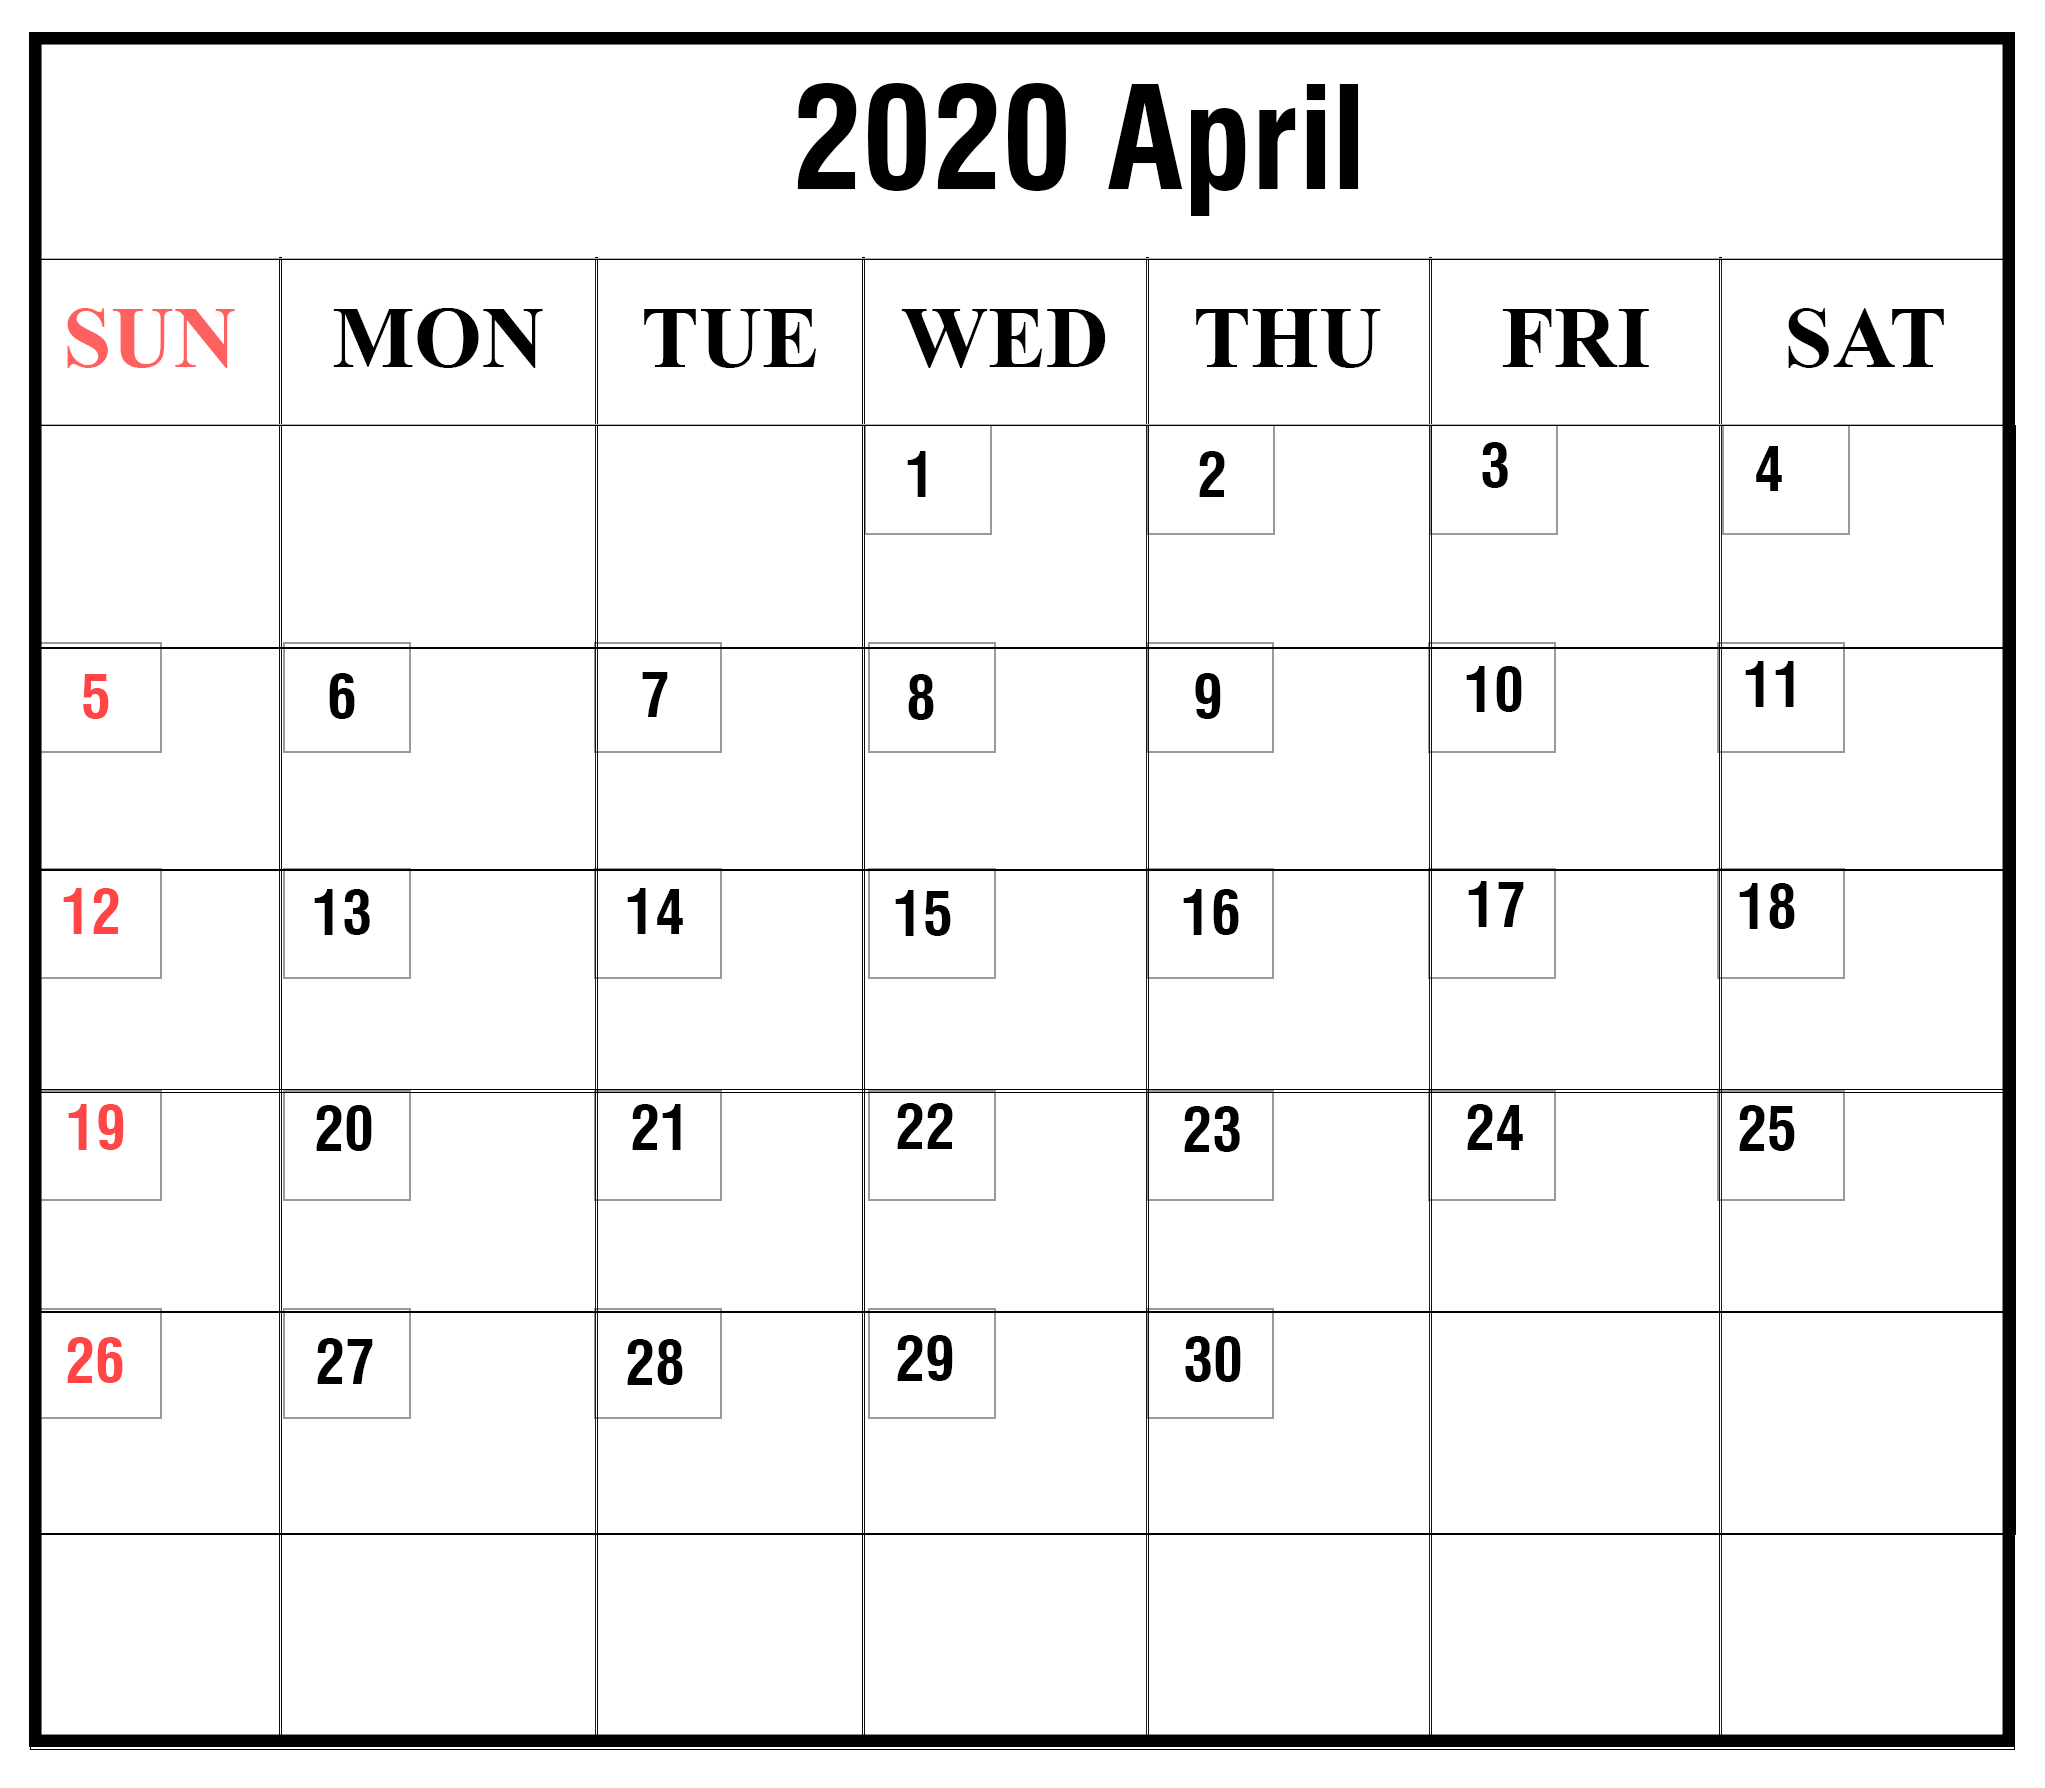 [%😄printable Yearly Calendar 2020 Template With Holidays [Pdf|Printable Blank I-9 Form 2020|Printable Blank I-9 Form 2020%]